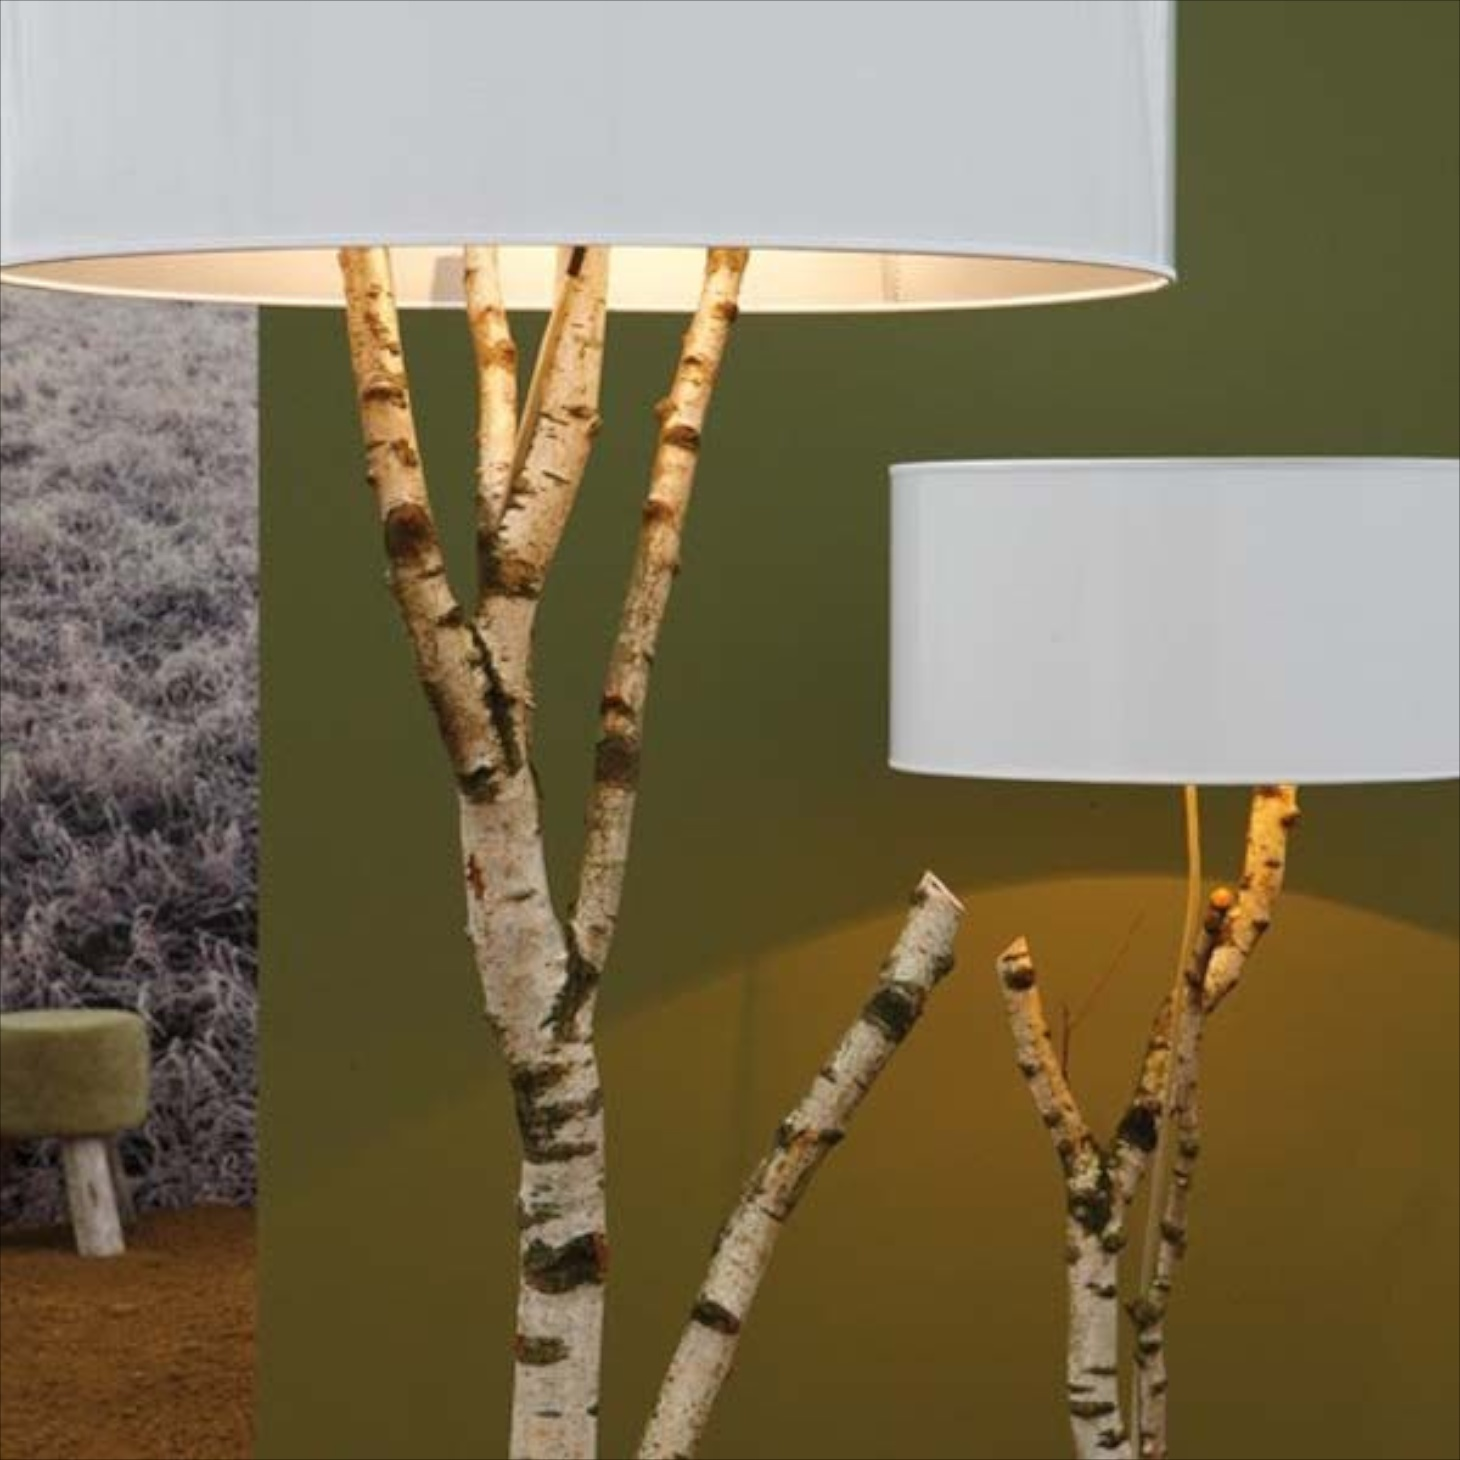 Wonderful A Floor Lamp Made From Birch Branches Lends An Organic Look And Would Wok  In A Country, Rustic Or A Contemporary Setting, Depending On The Shade You  Choose.